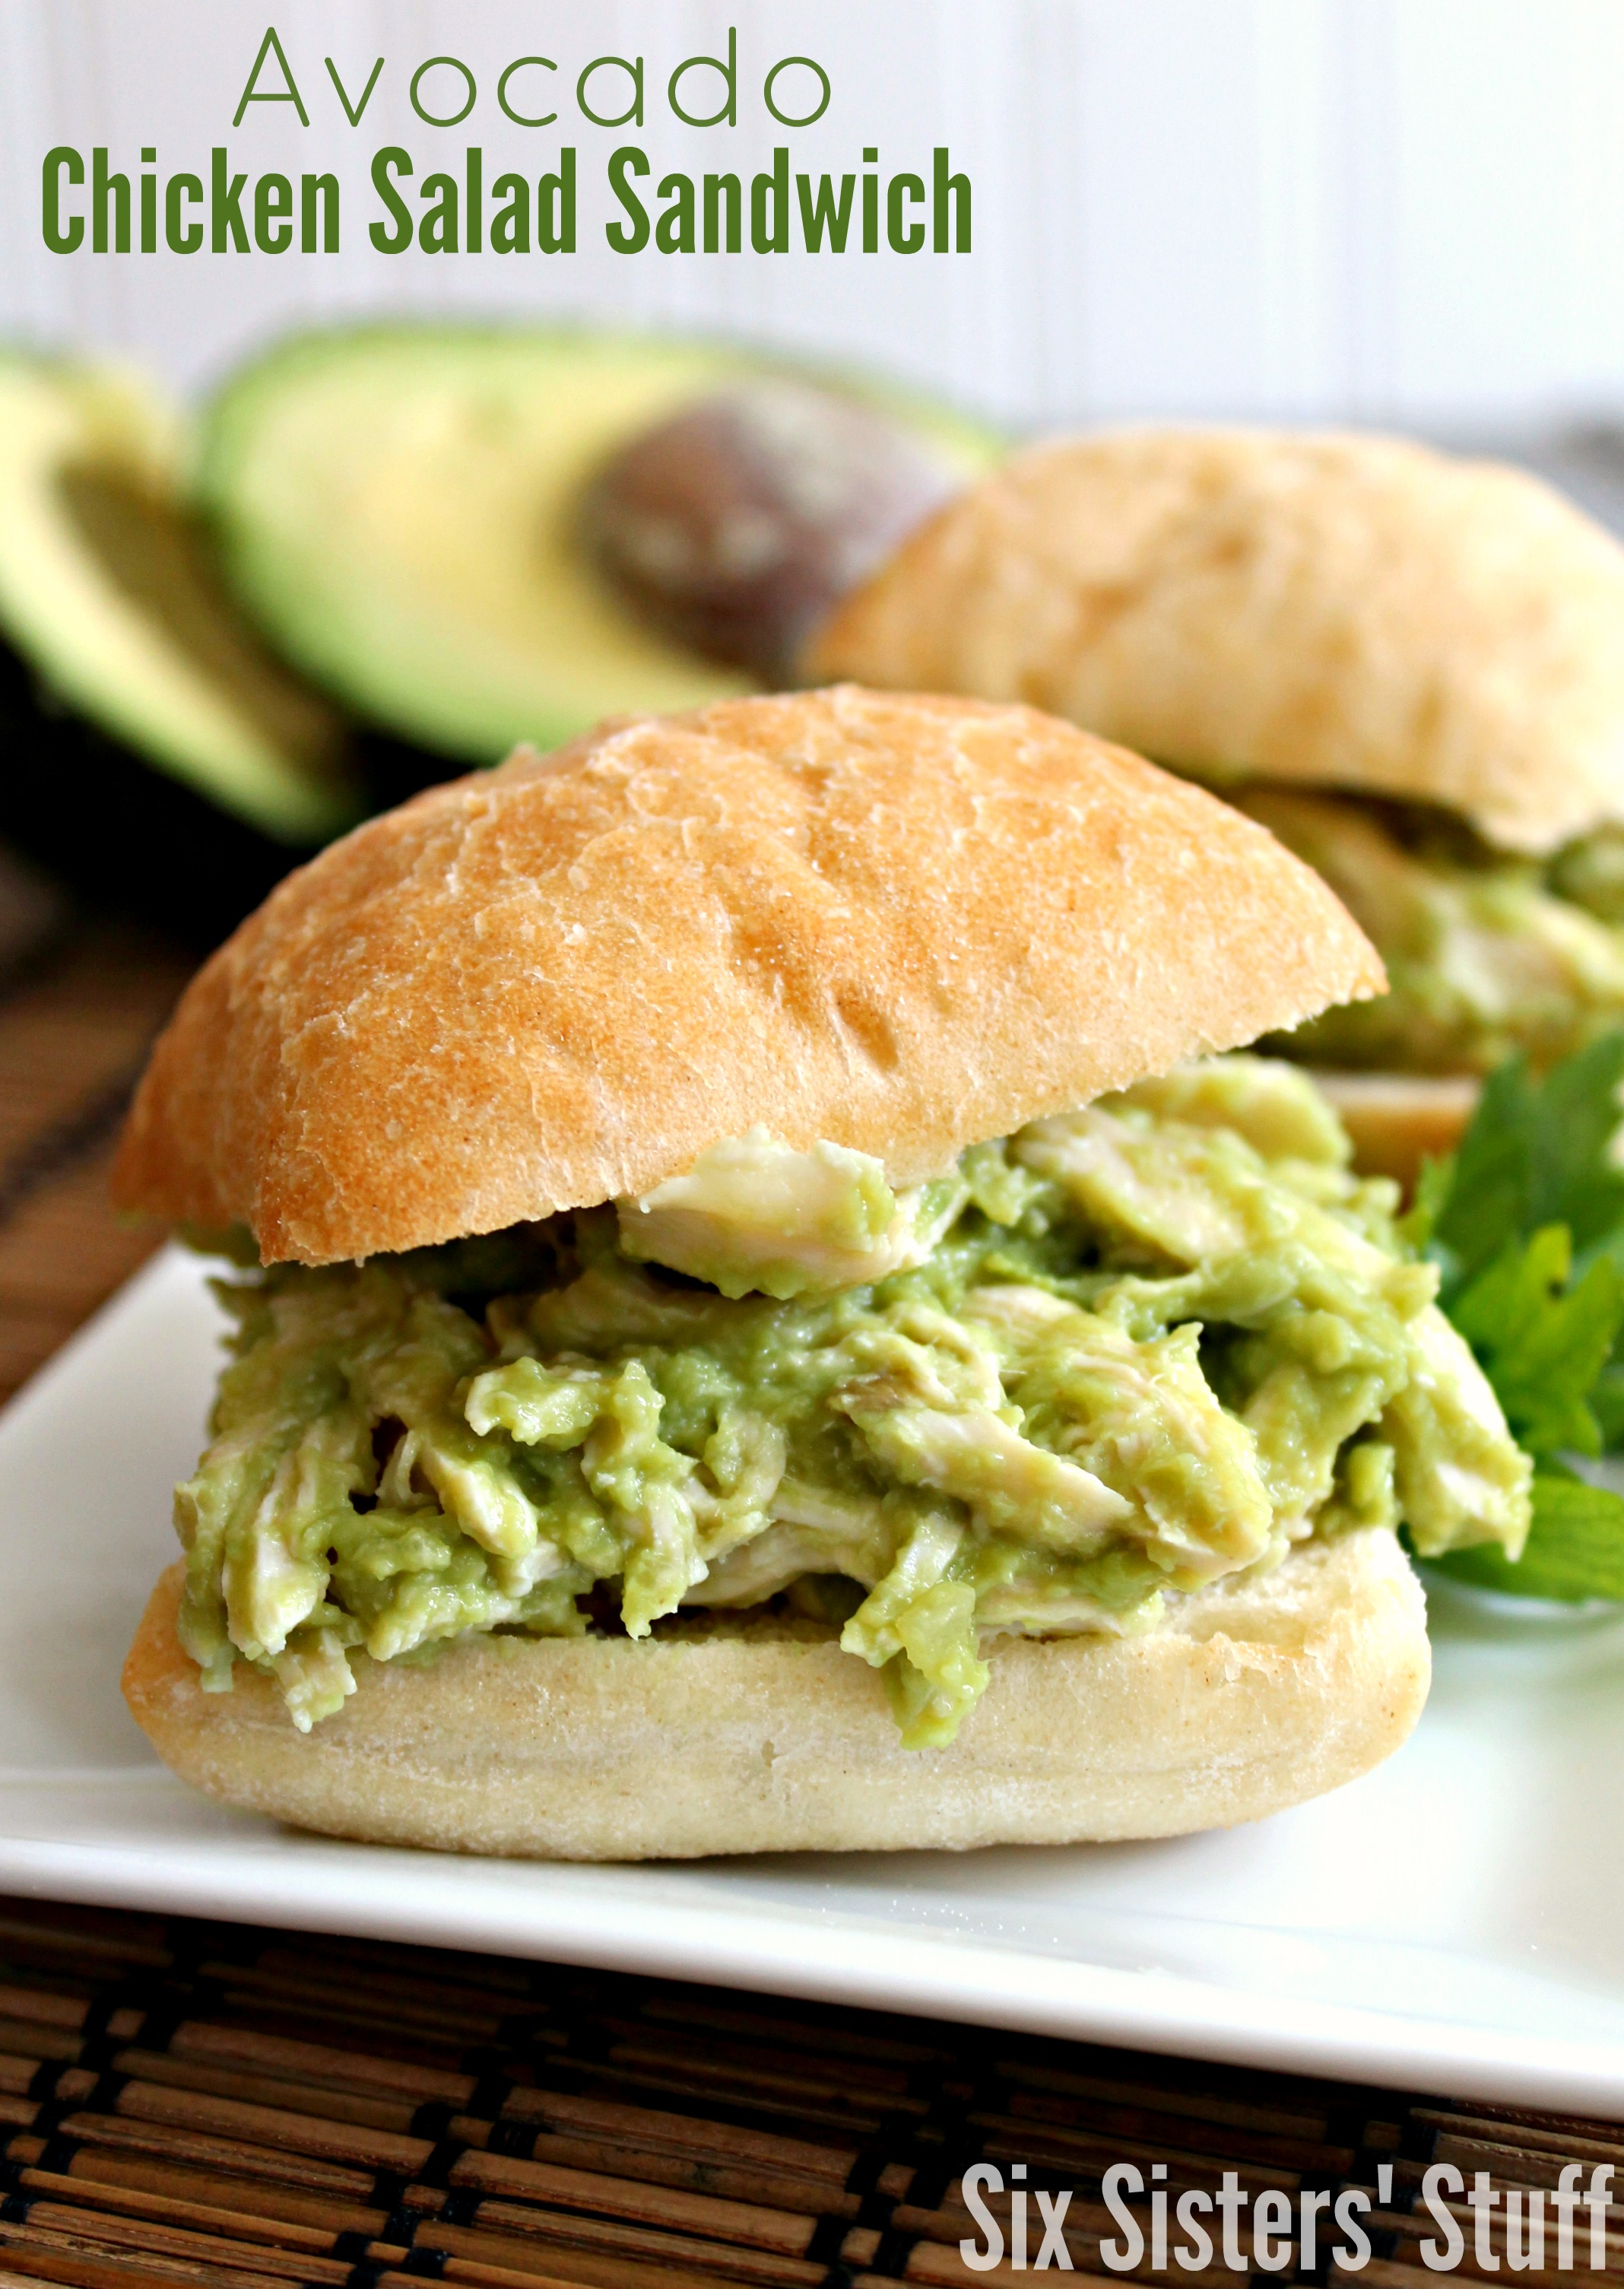 Avocado Chicken Salad Sandwiches Recipe